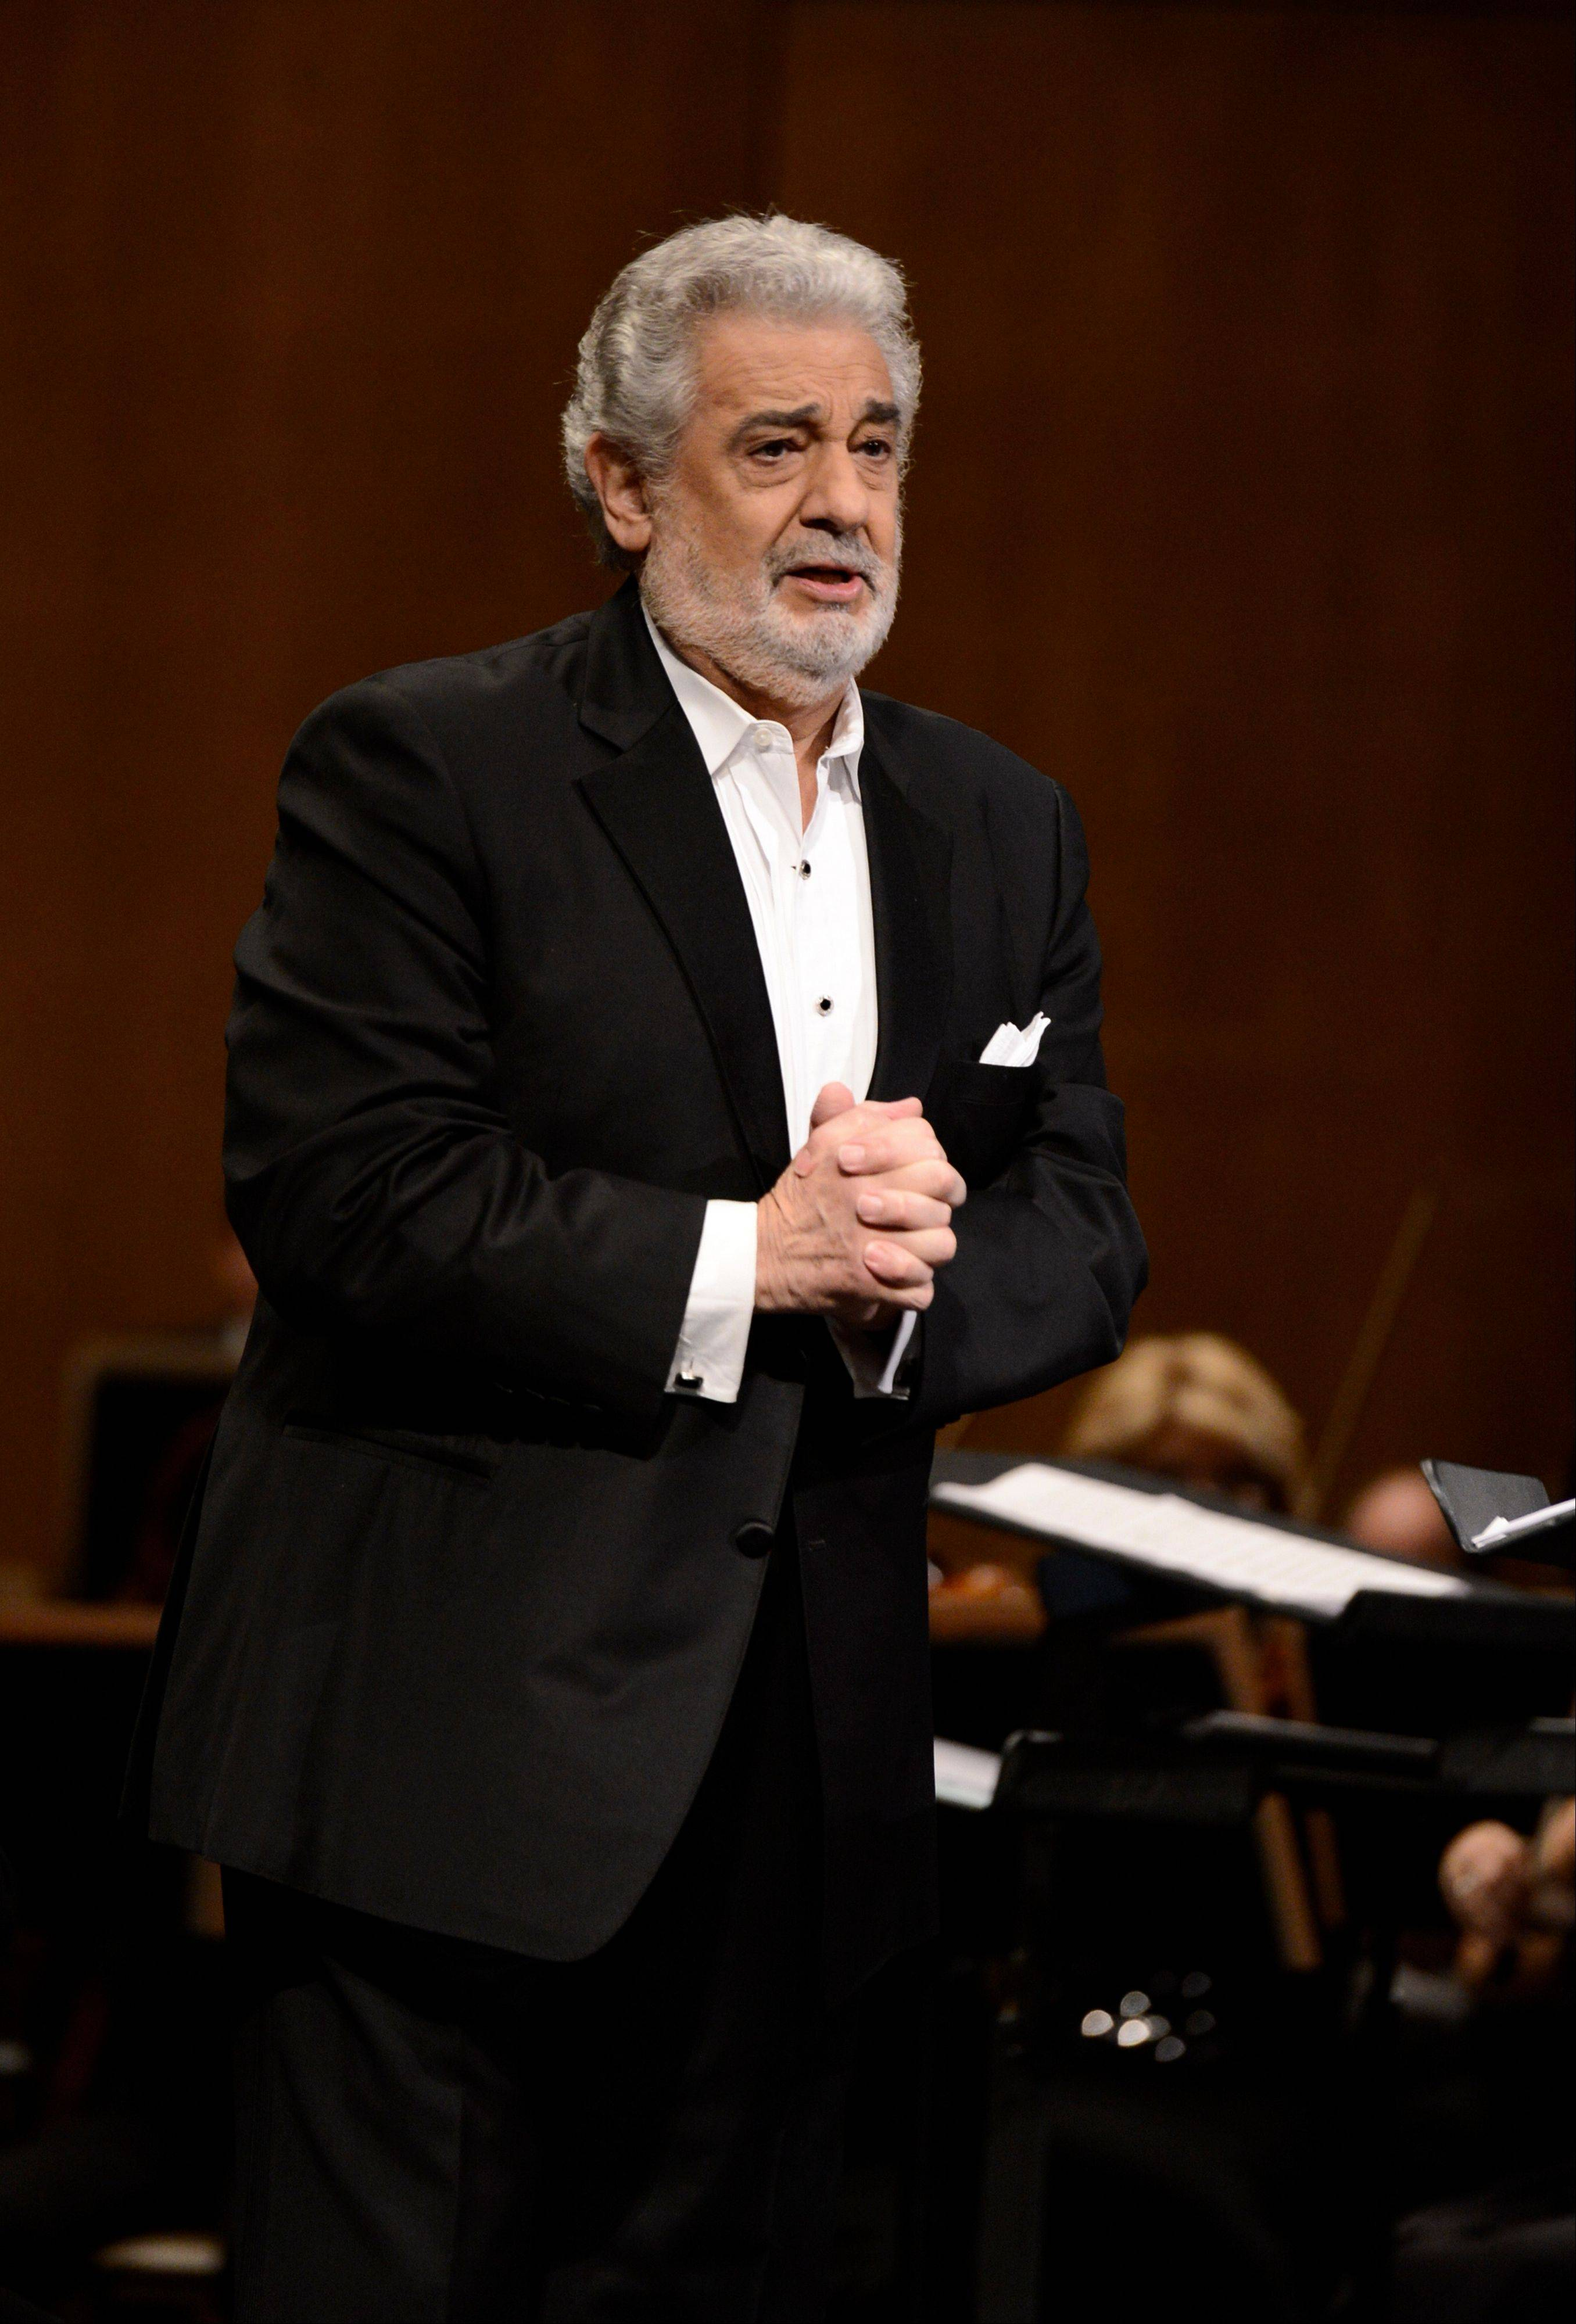 Tenor Pl�cido Domingo is in the hospital after suffering a blockage in an artery of the lungs. Domingo�s publicist says the 72-year-old is expected to make a full recovery but will have to miss at least two appearances scheduled for later this month.